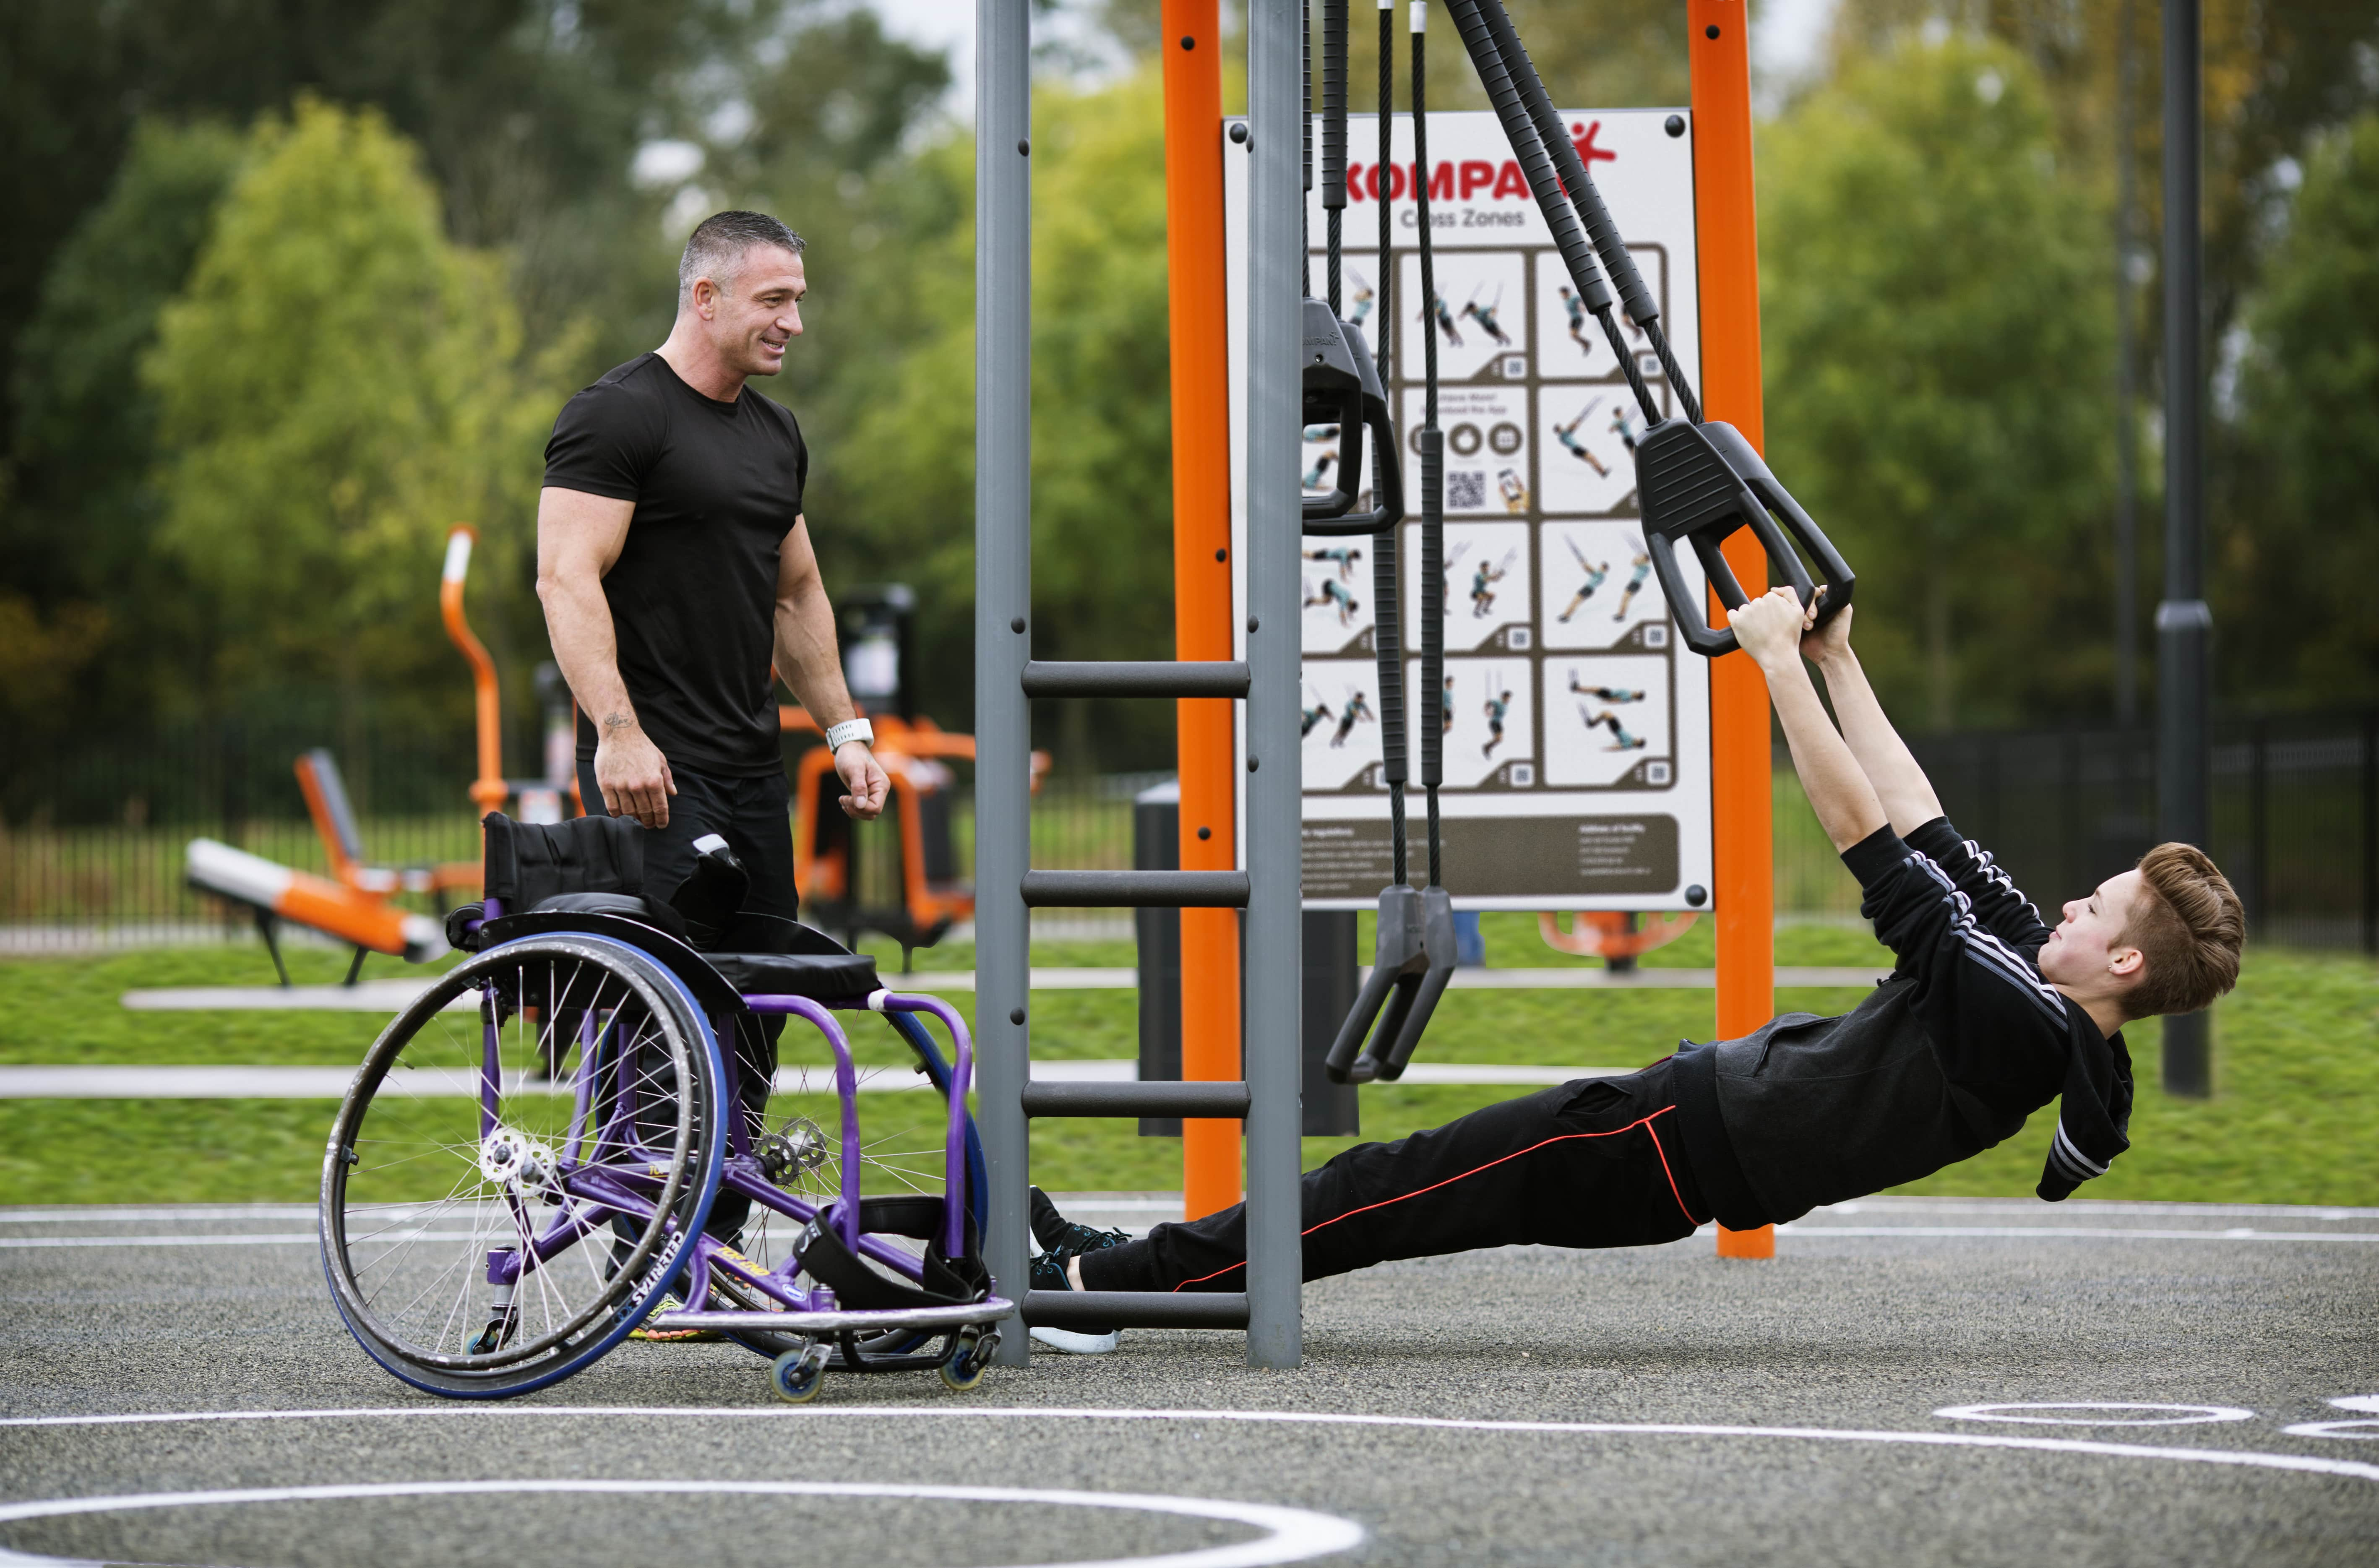 Inclusive Playgrounds for children with special needs